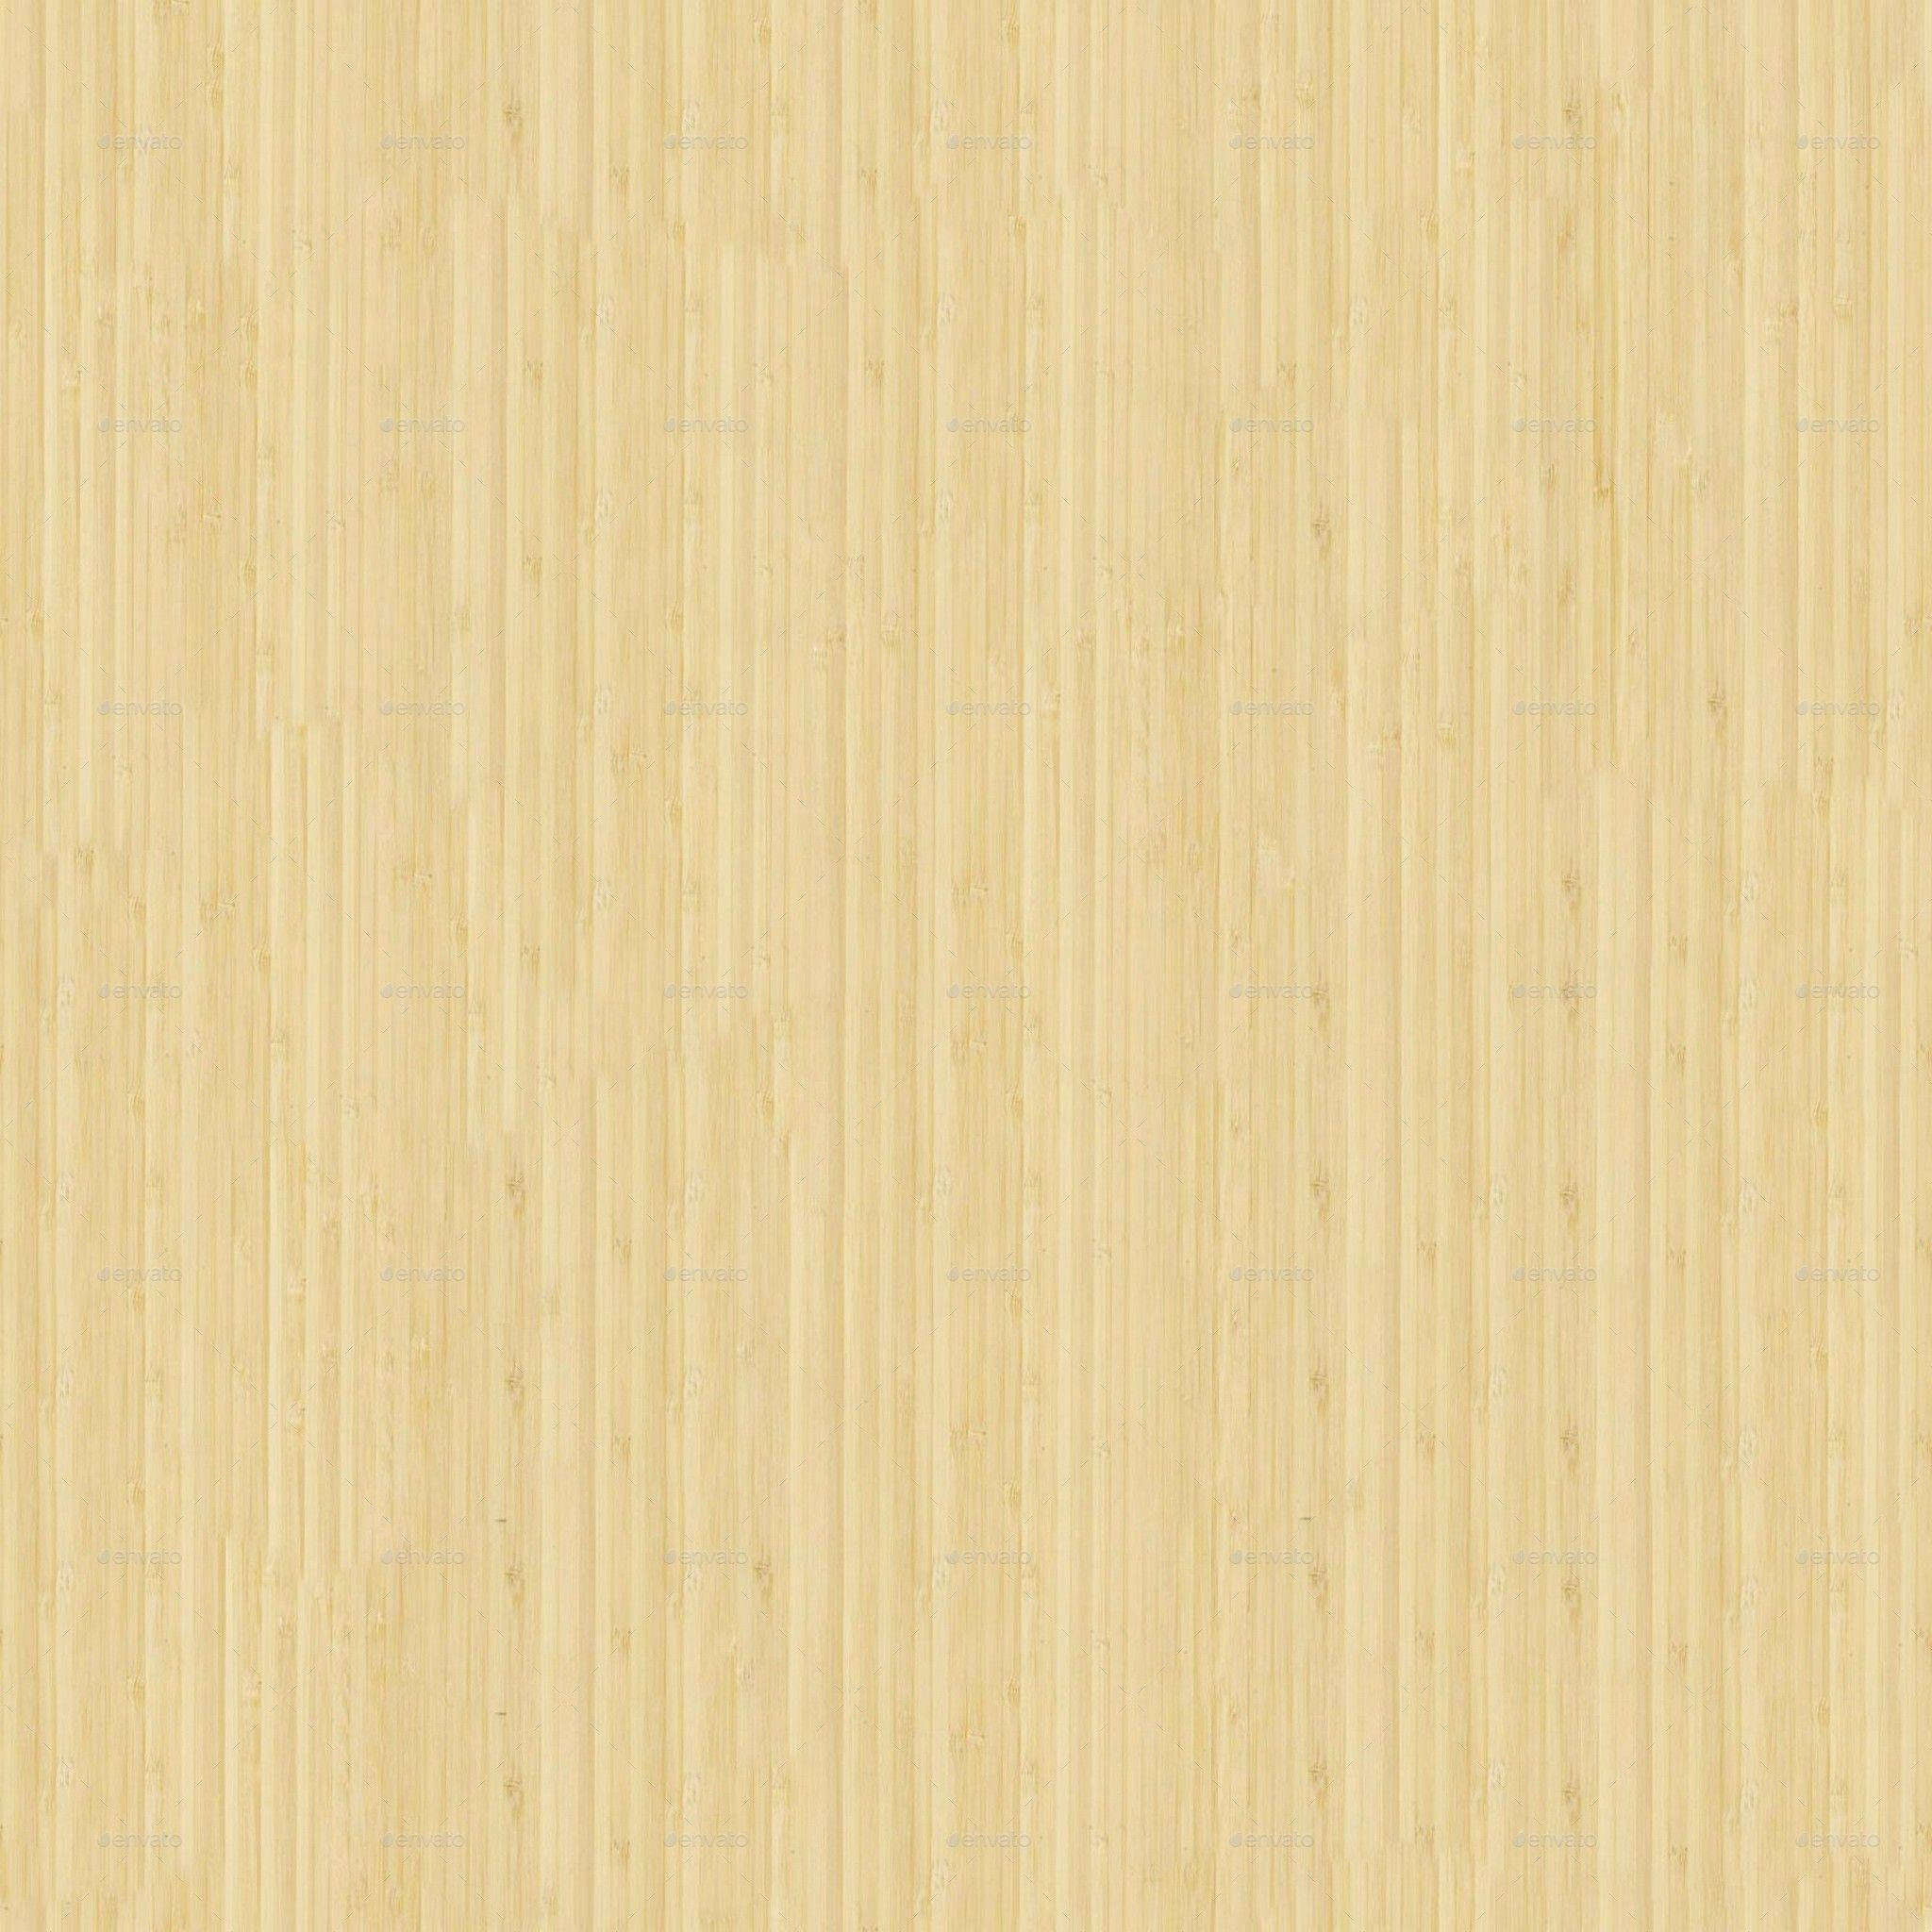 Bamboo Laminate Countertop Plywood Seamless Texture Set Volume 1 Seamless Plywood